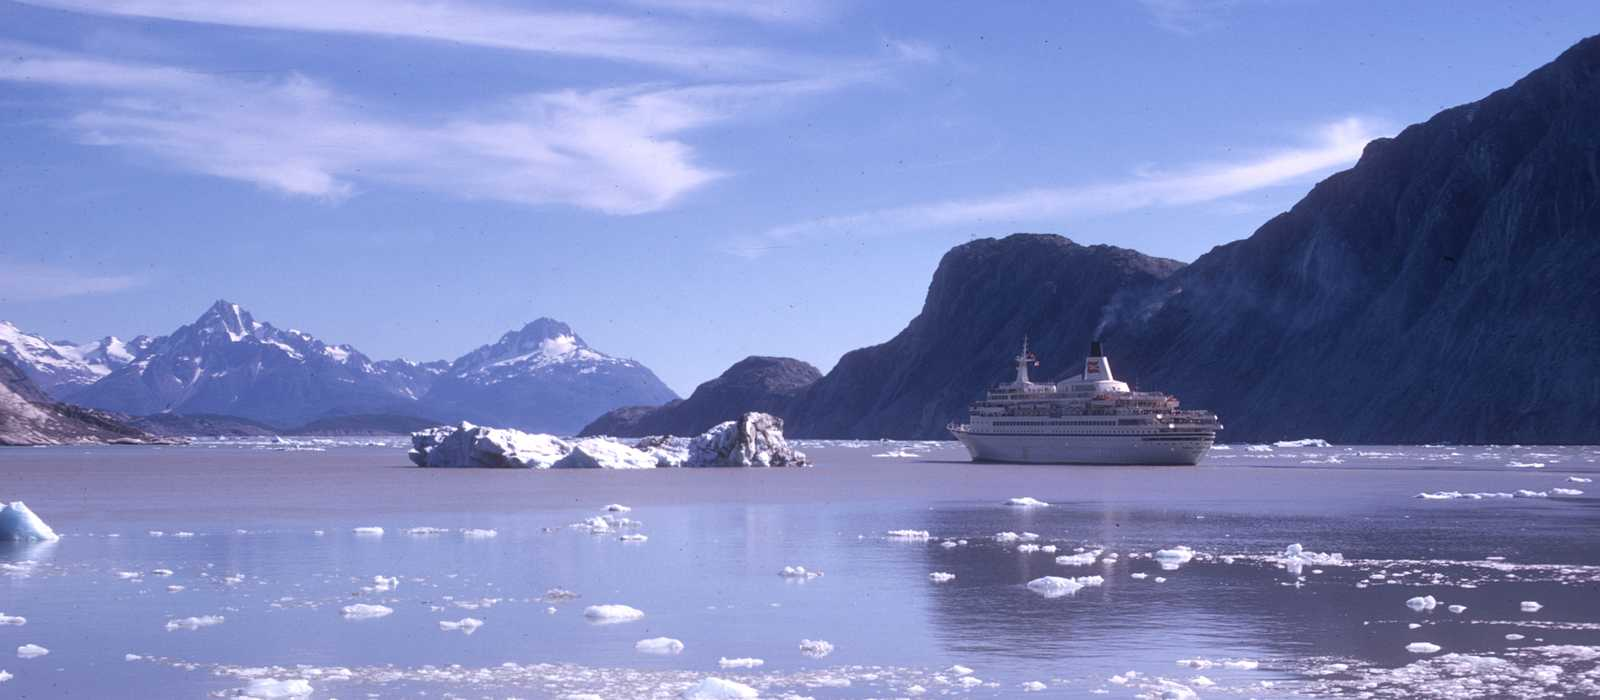 Glacier Bay National Park: Cruise